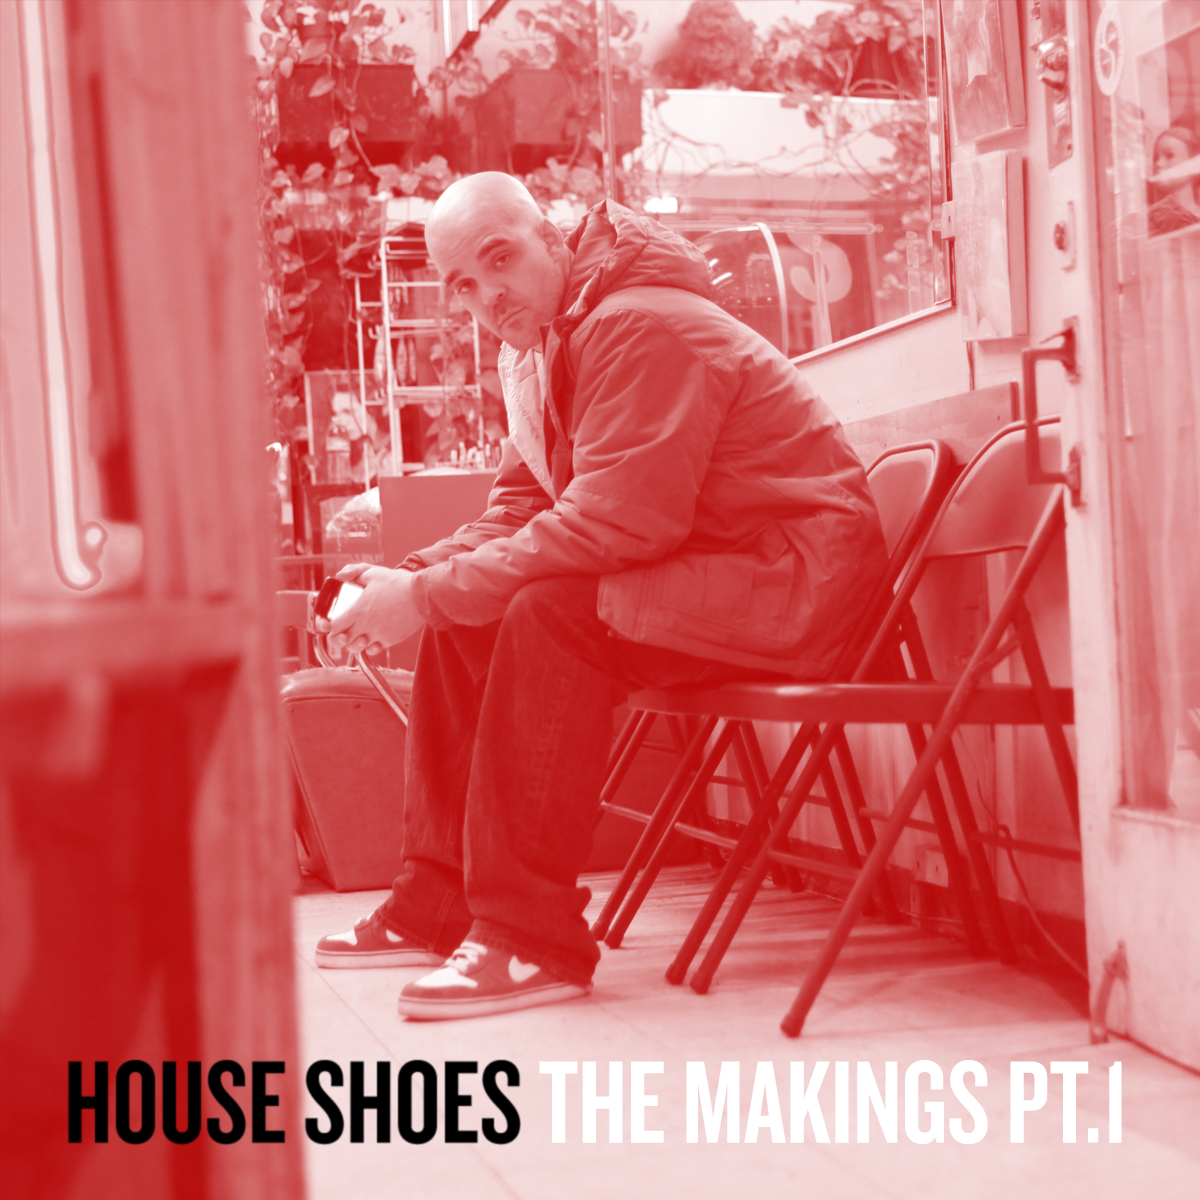 House Shoes - The Making Part 1